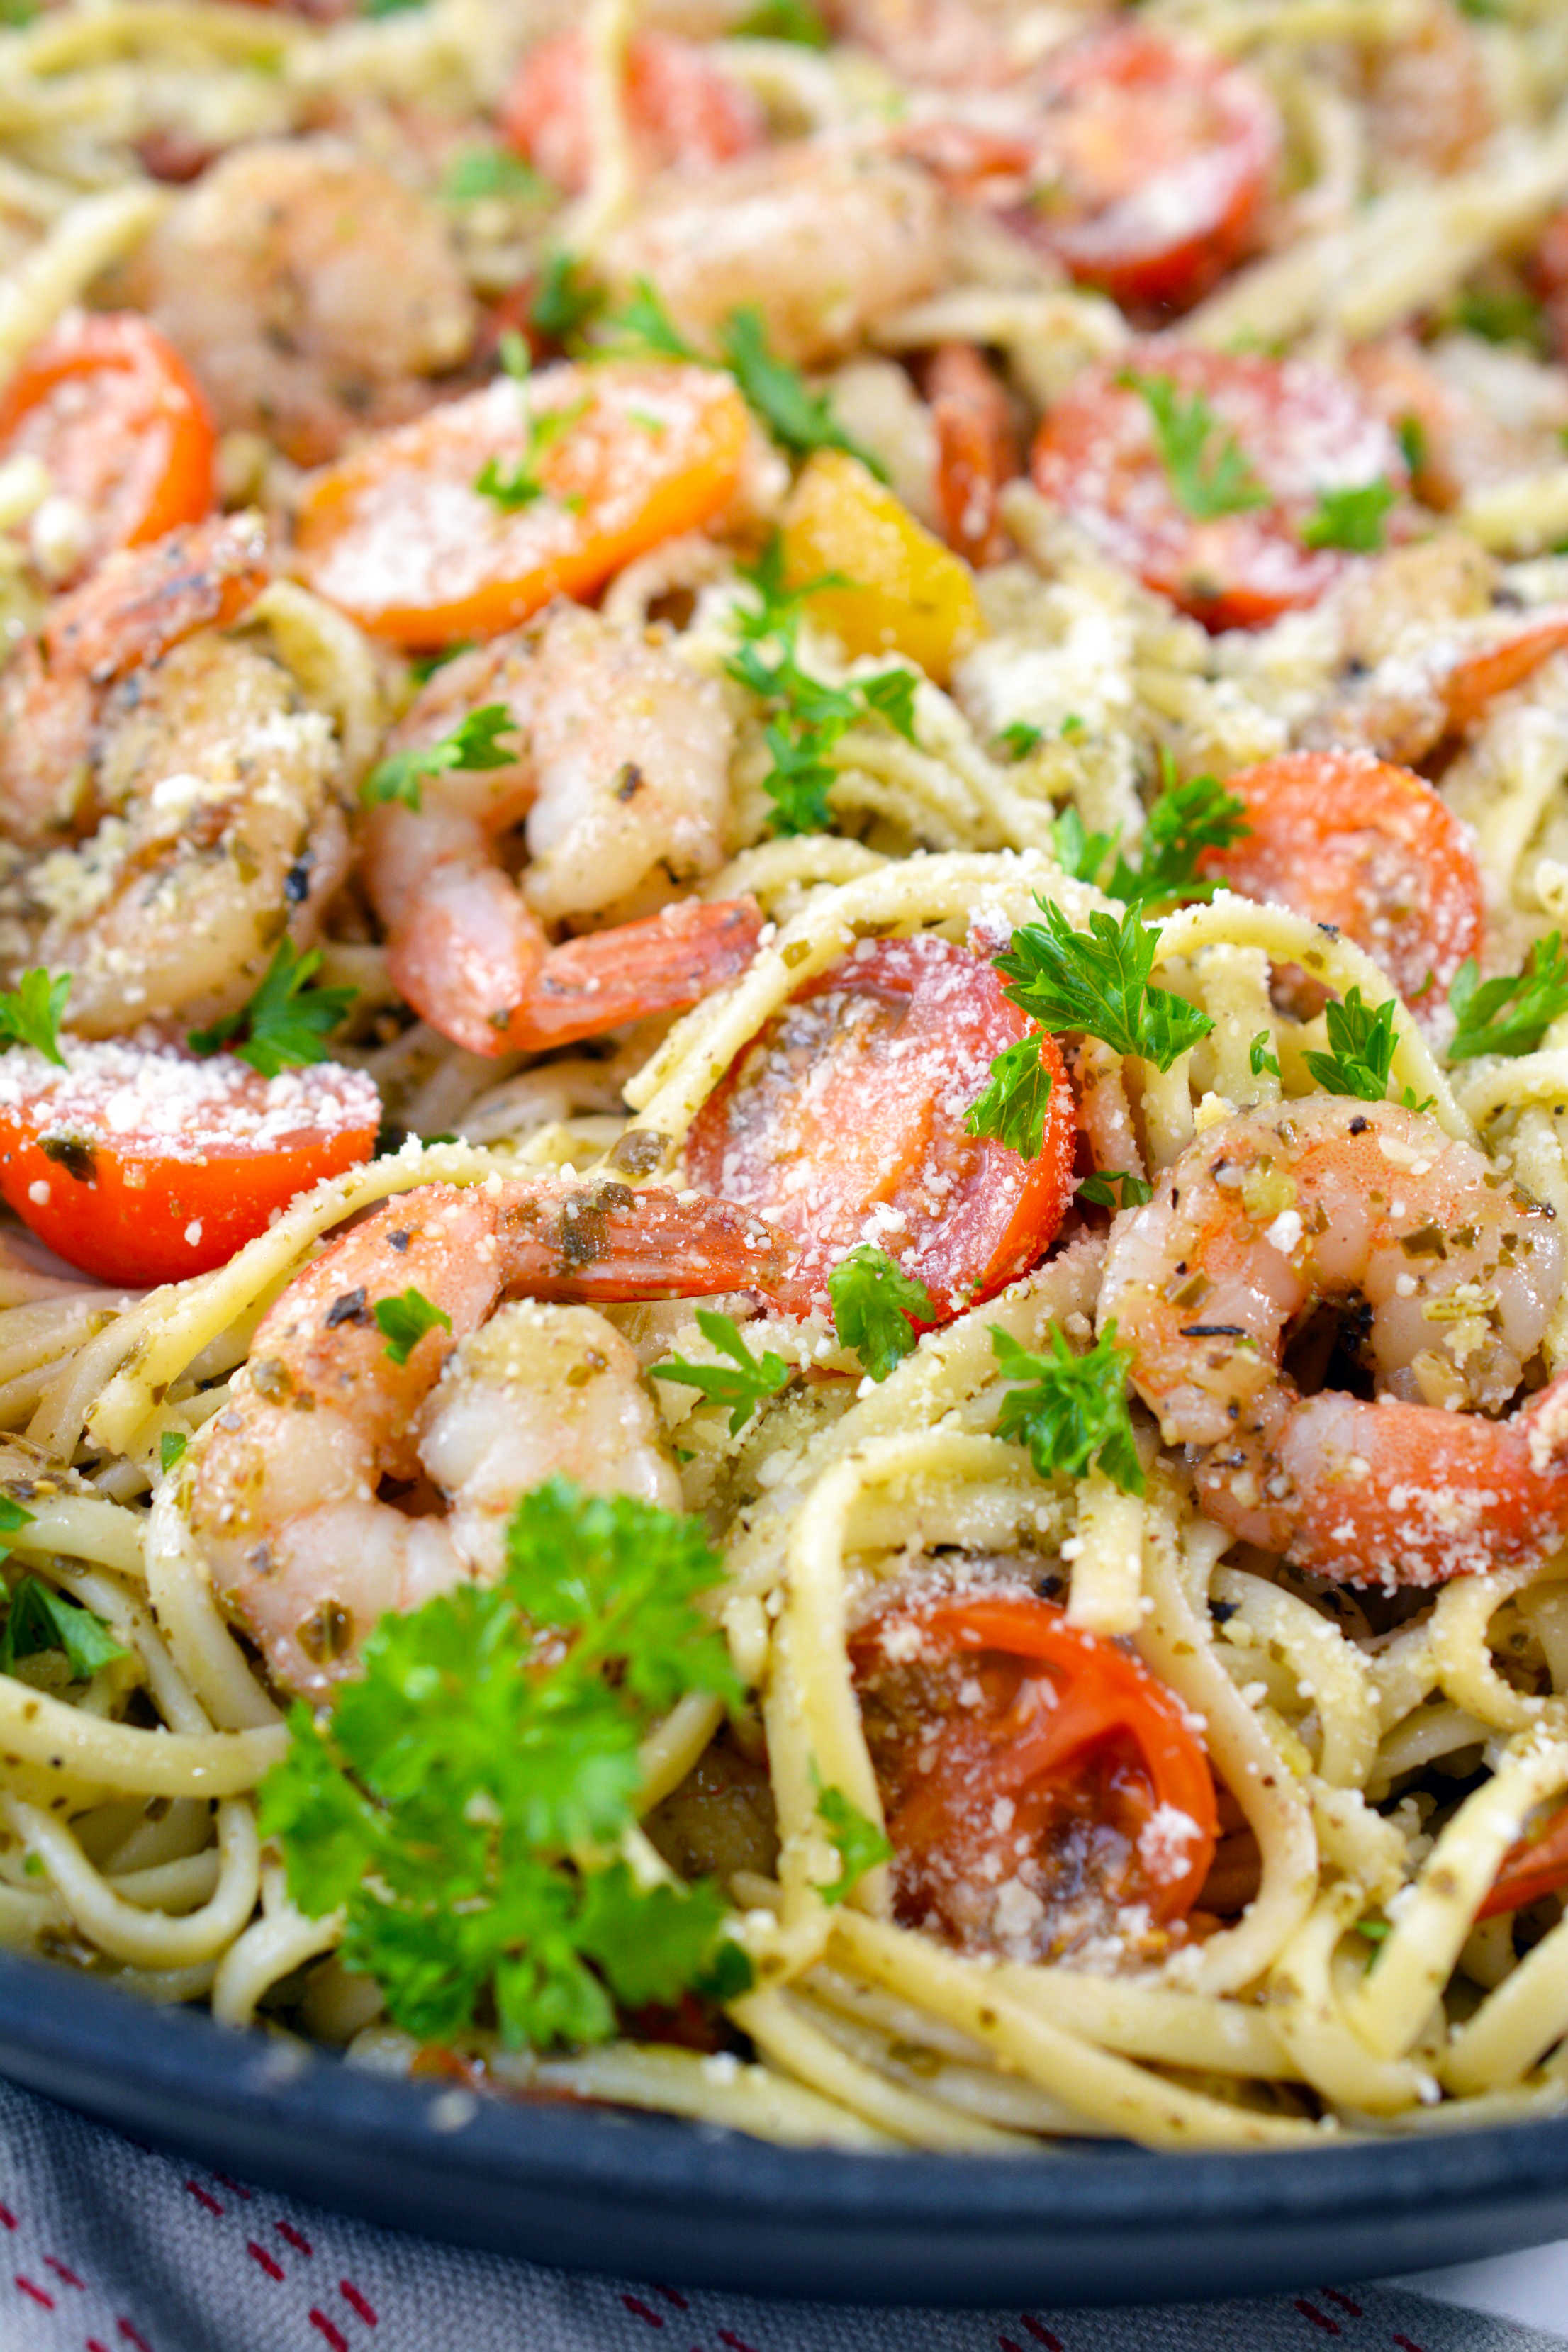 Shrimp Pesto Pasta in a pan with close up image